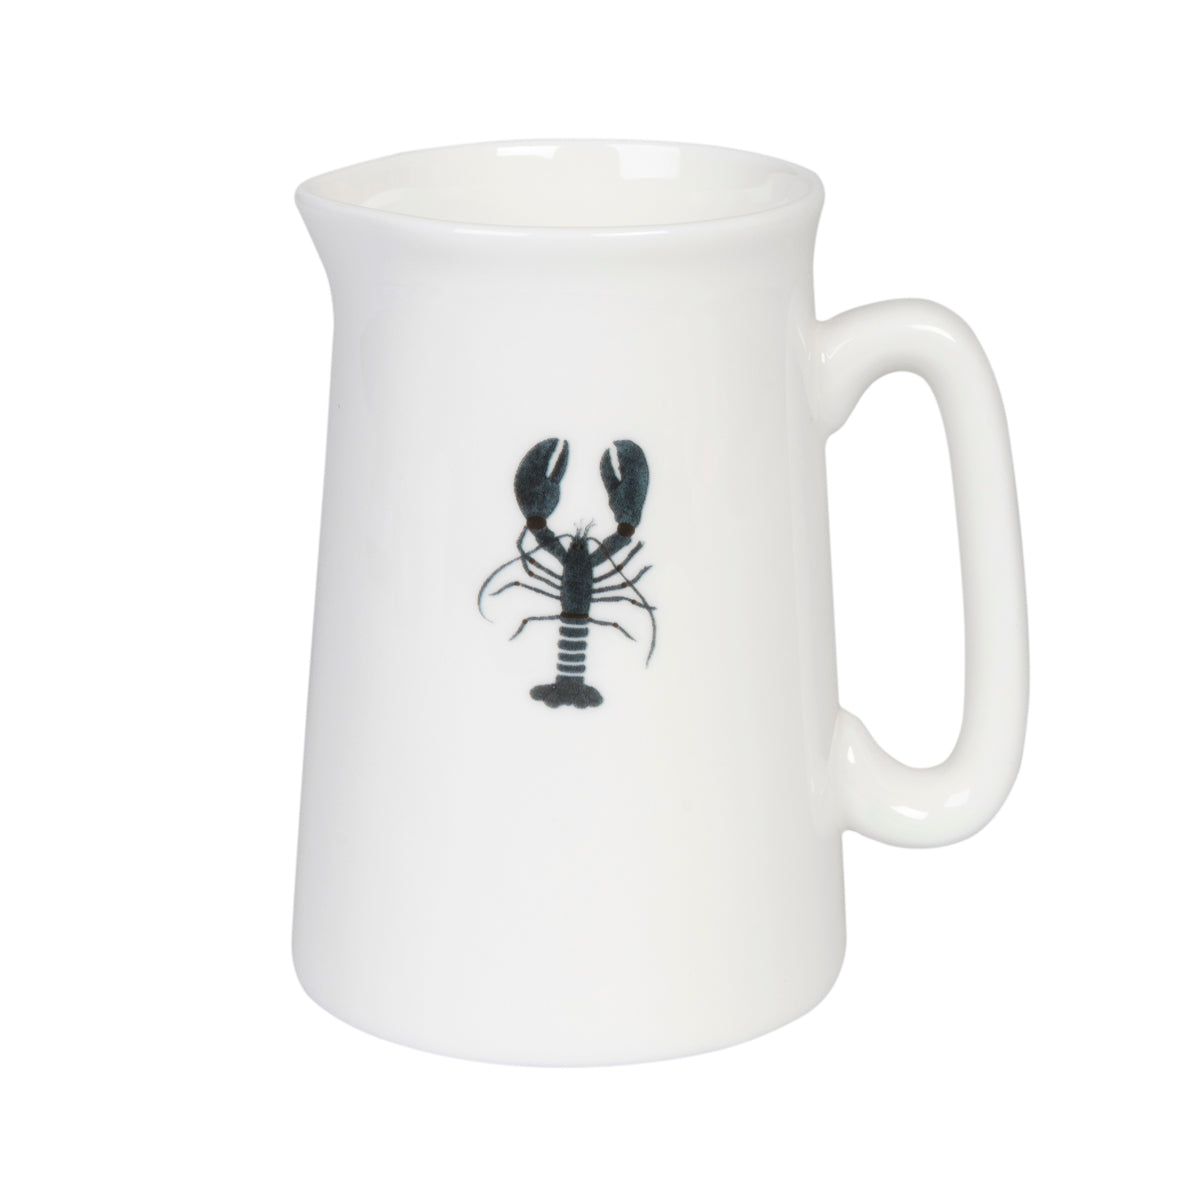 Sophie Allport fine bone china Lobster Jug